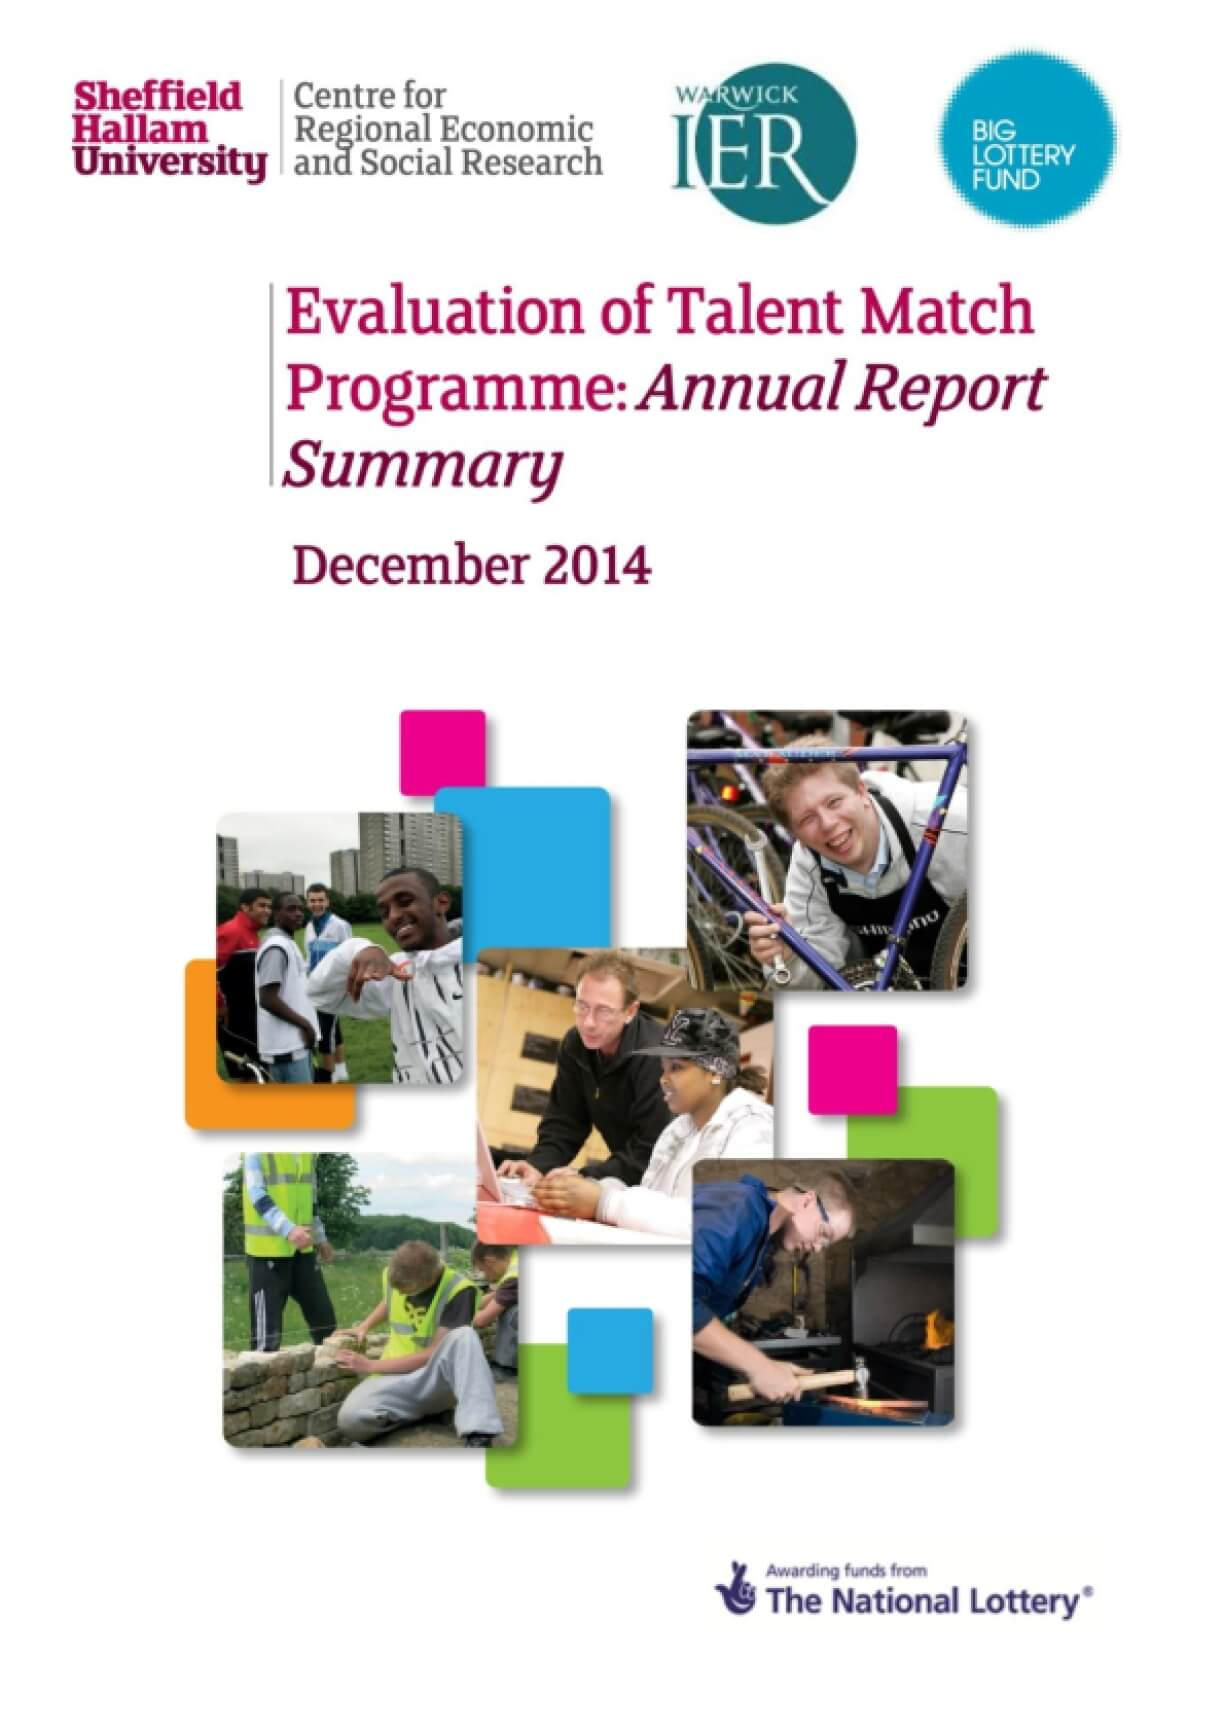 Evaluation of Talent Match Programme: Annual Report Summary